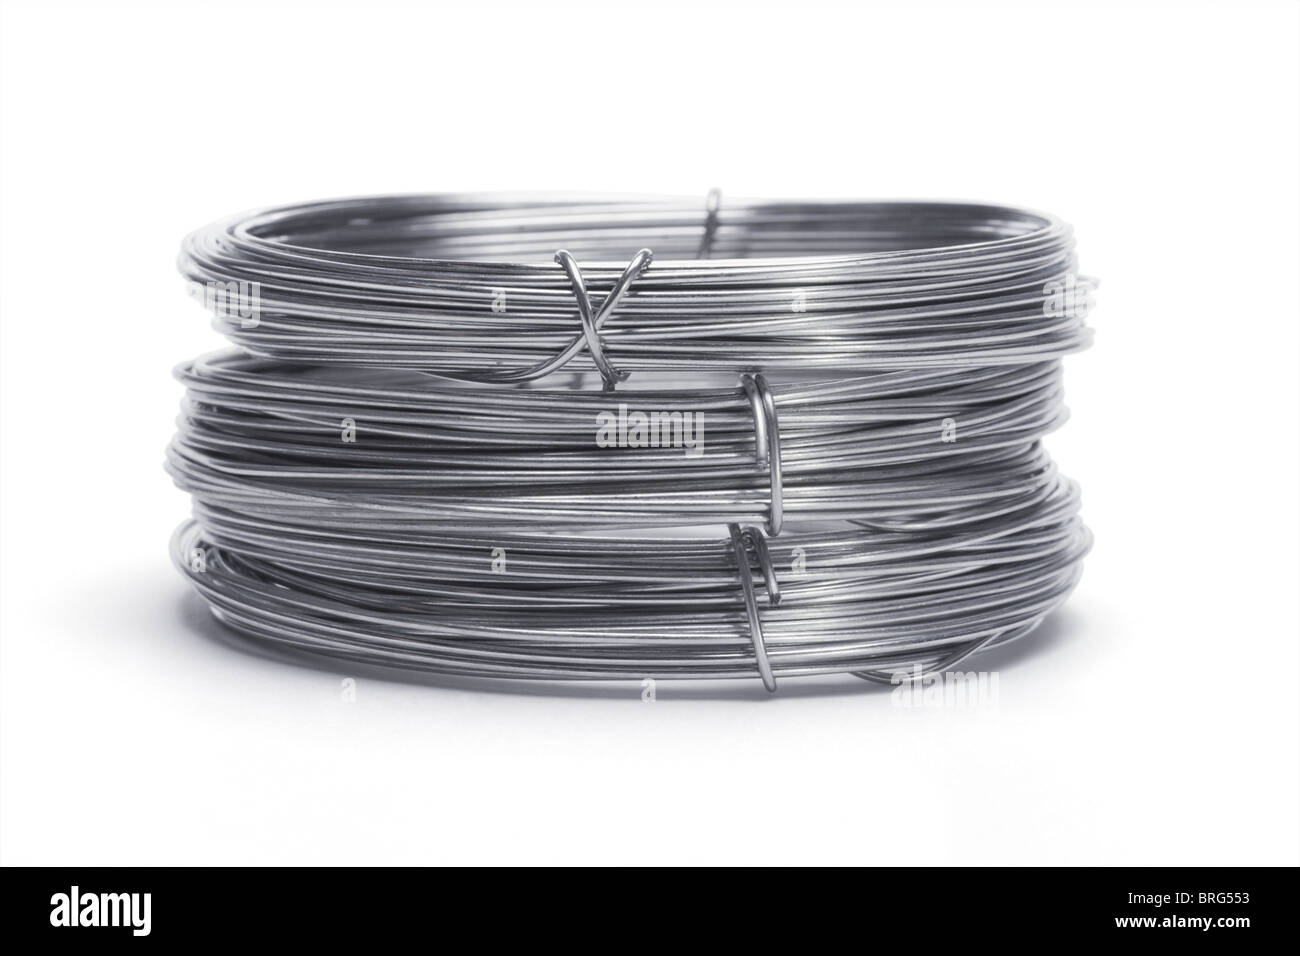 Stack of galvanized wires on white background - Stock Image